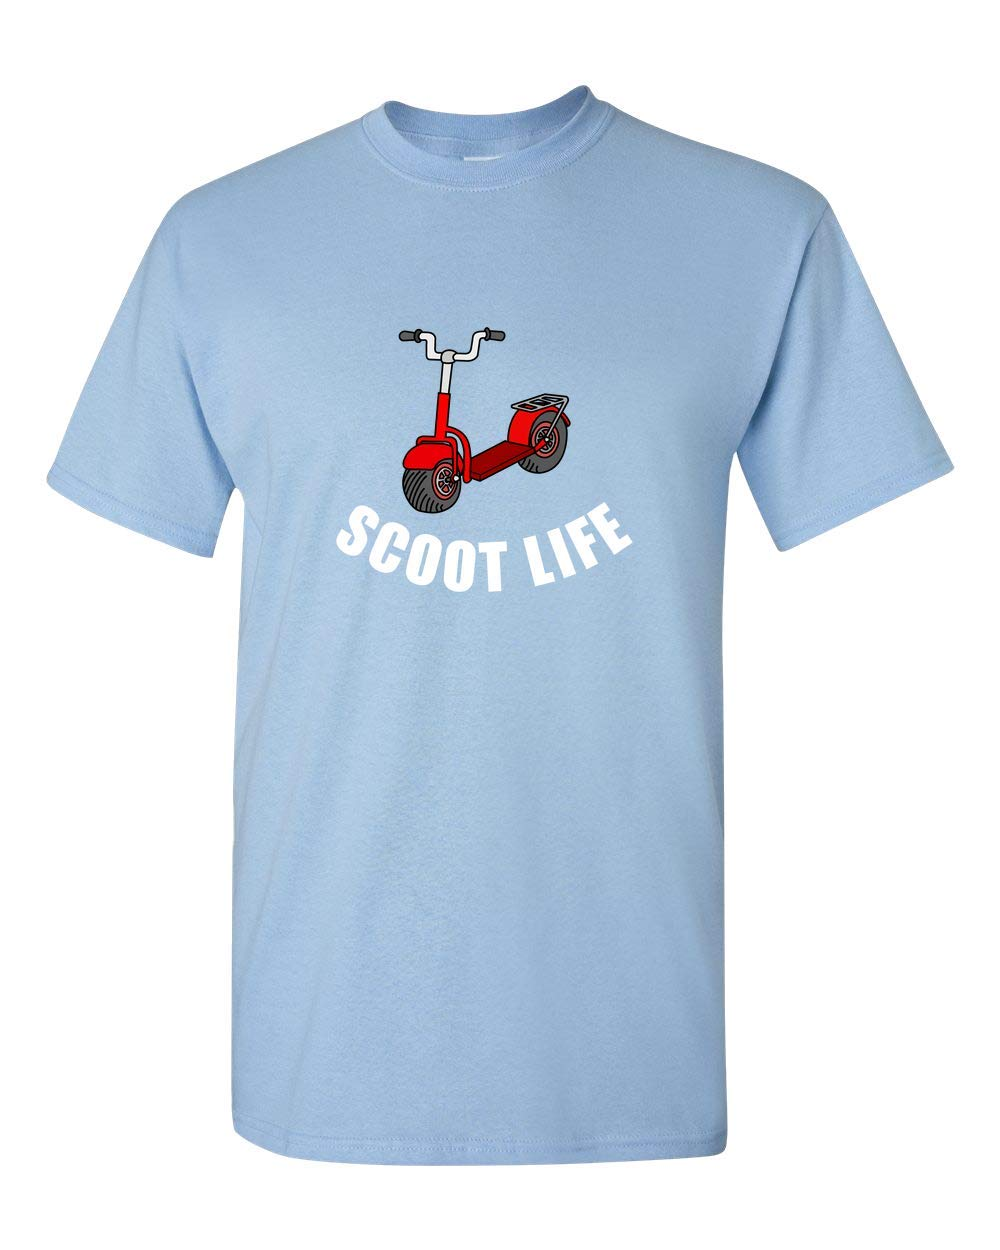 Scooter Shirt - Funny Scooter Gifts - Scooter Rider - Scooter Lover - Scoot Life Light Blue by realpeoplegoods